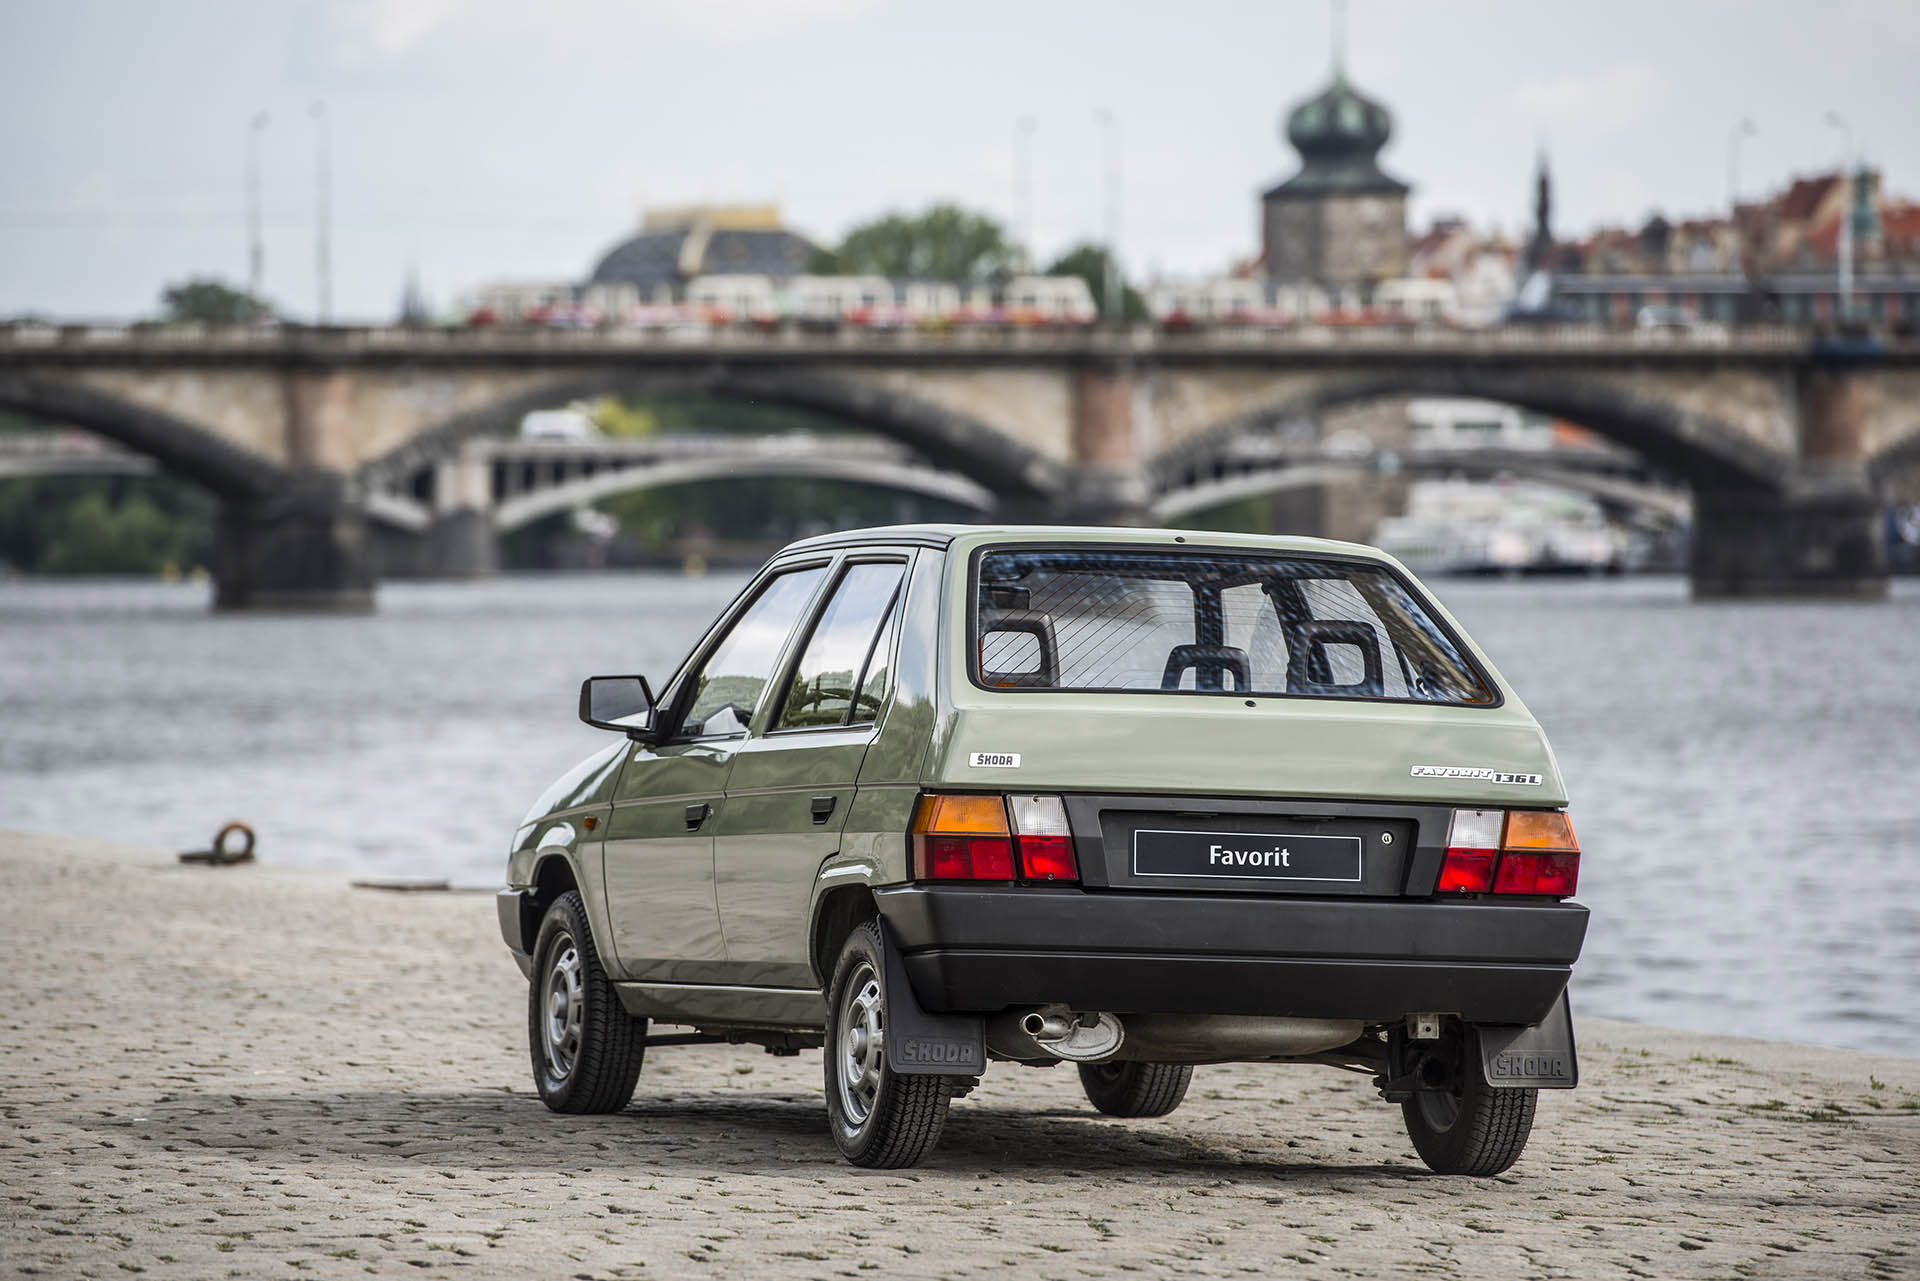 SKODA FAVORIT Entering an era of success 30 years ago 7 2